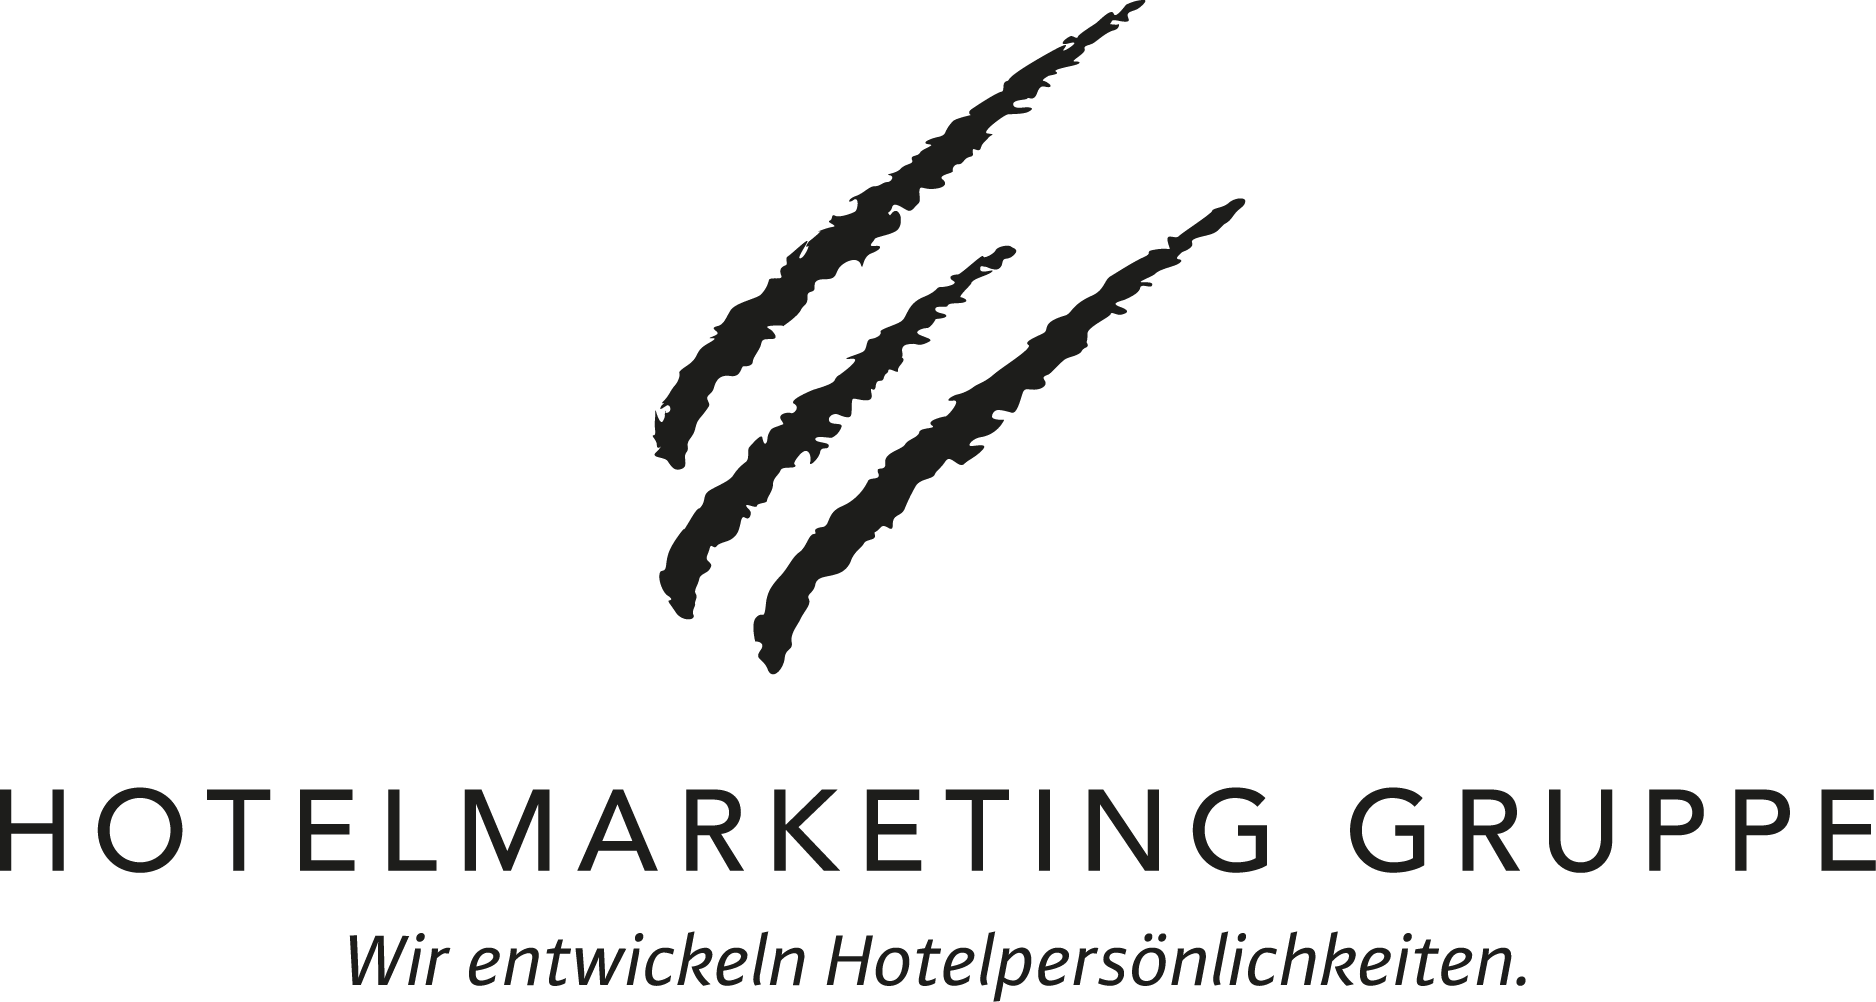 Hotelmarketing Gruppe